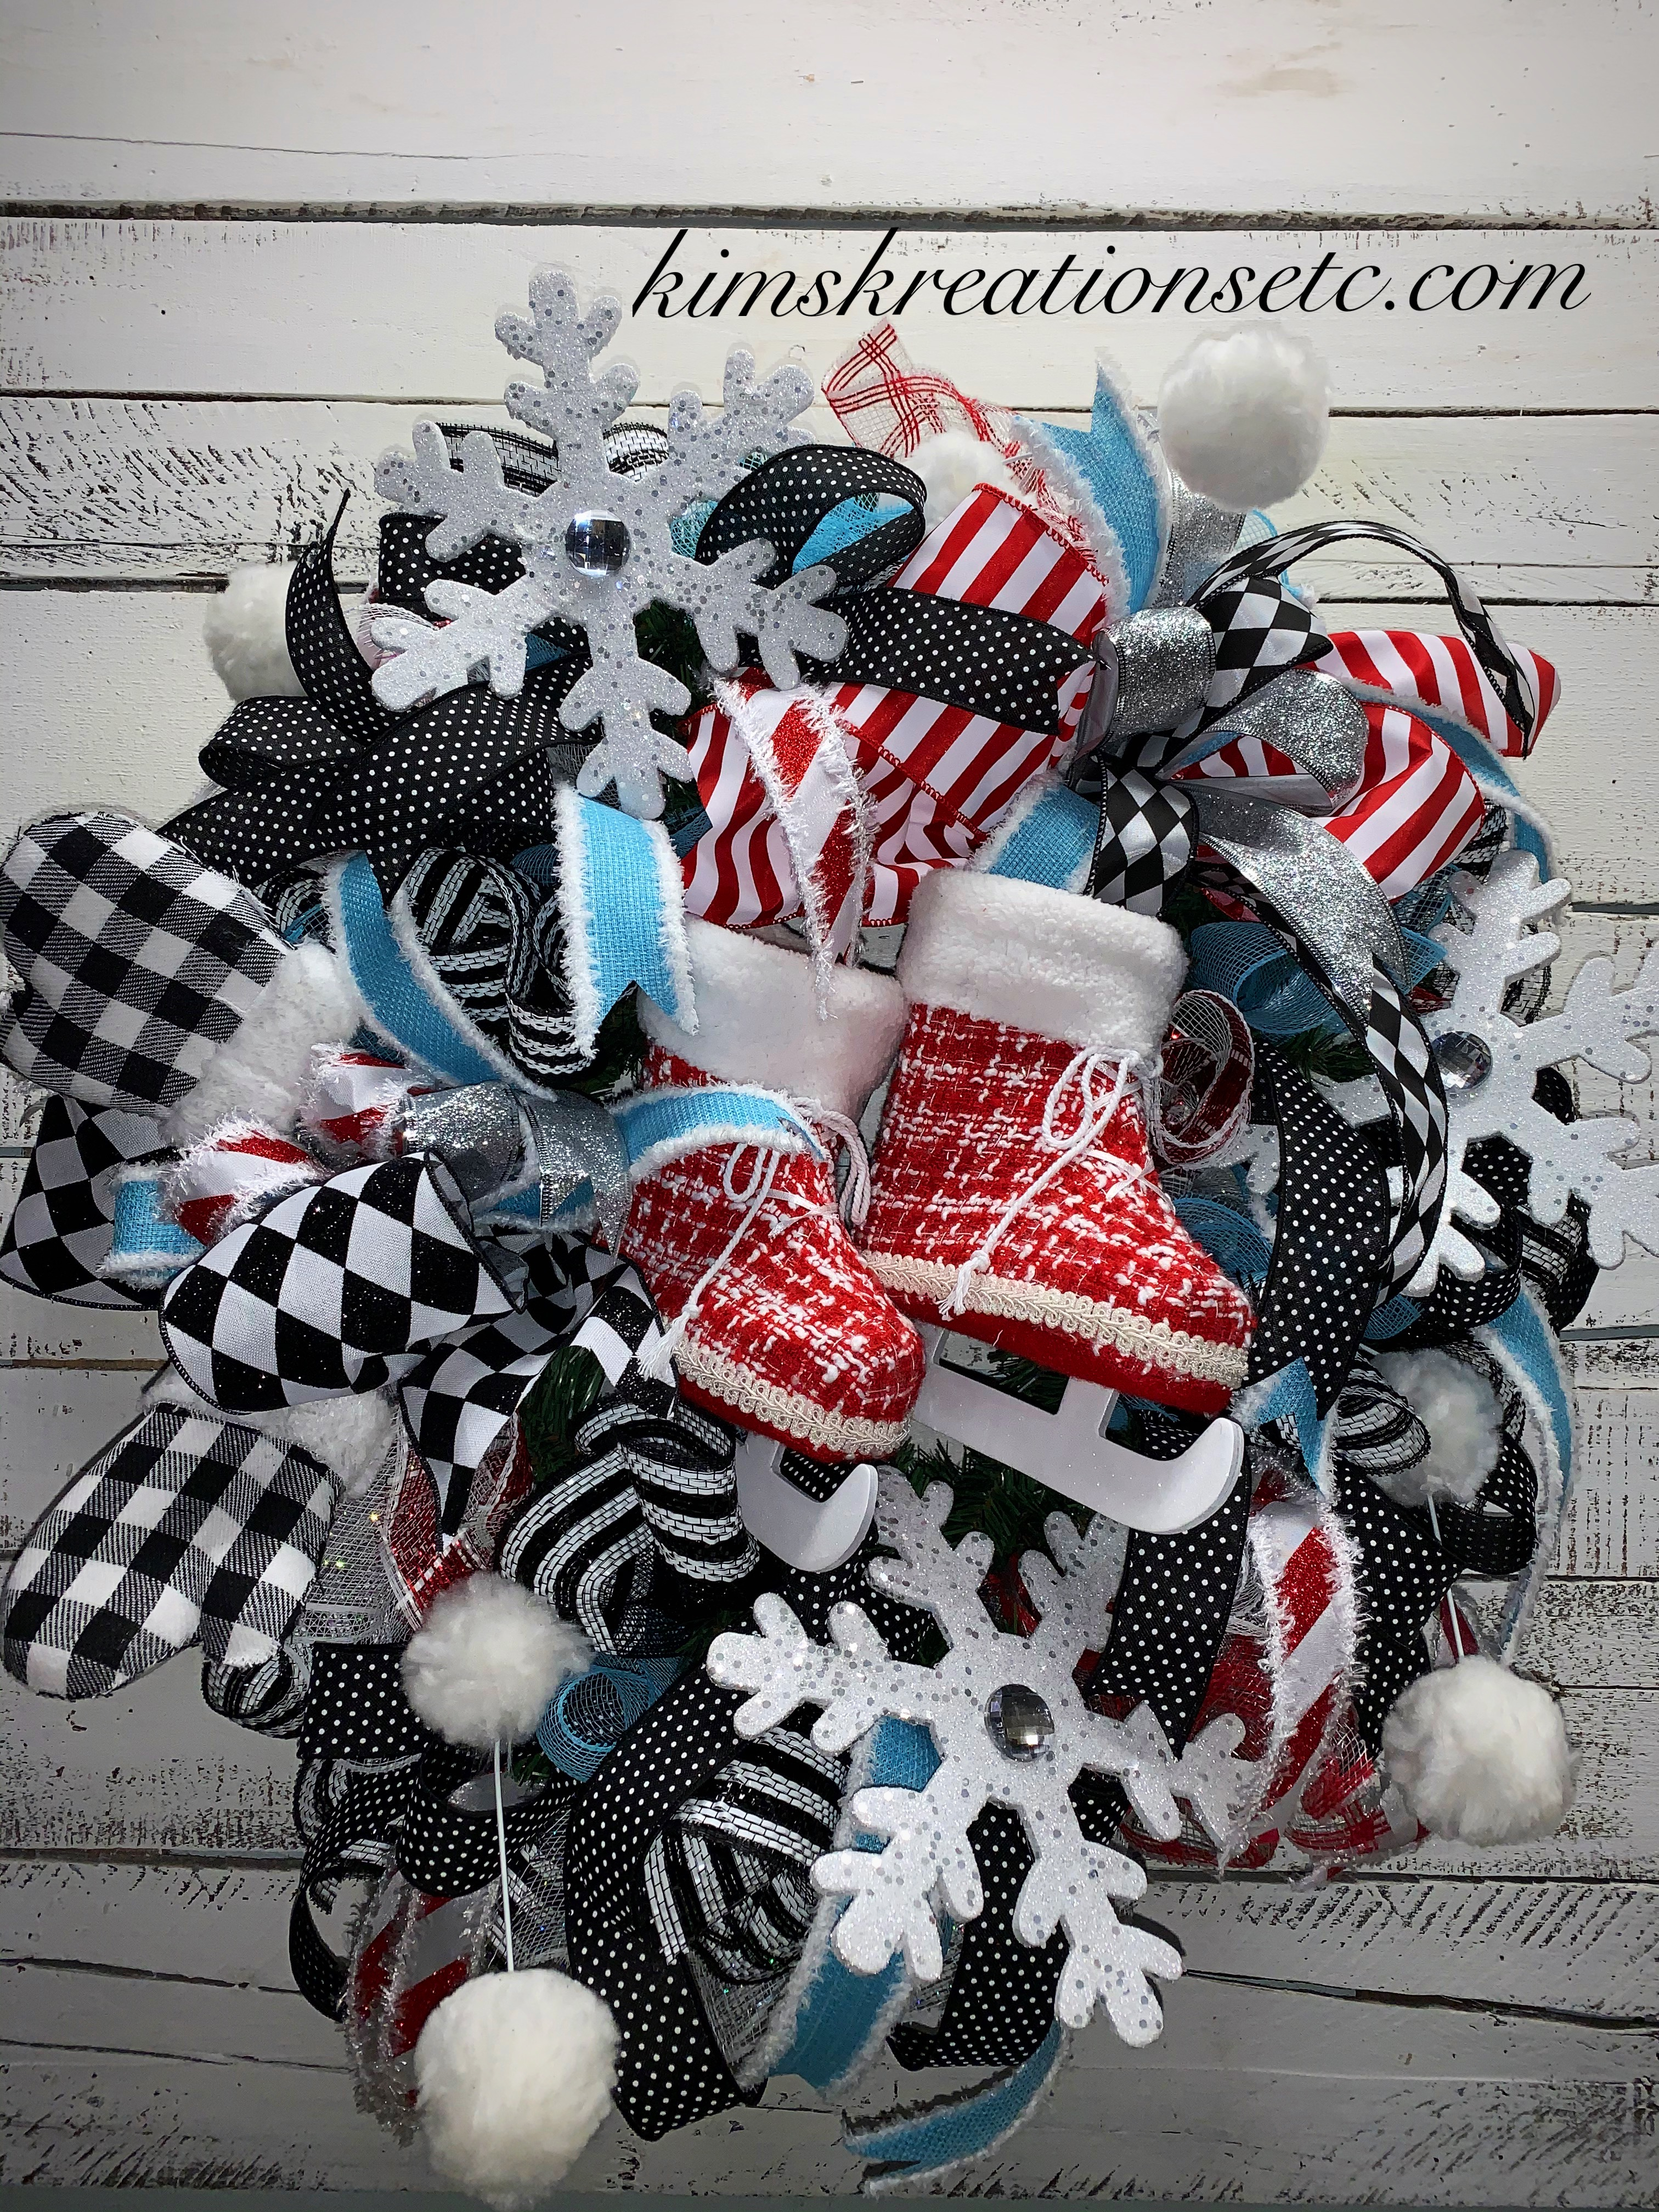 Winter Wreath Free Shipping Ice Skates Winter Door Wreath Black And White Plaid Winter Themed Wreath Wreath For Winter Ice Skates Wreath Front Door Wreath Winter Decor Home Decor Red Ice Skates